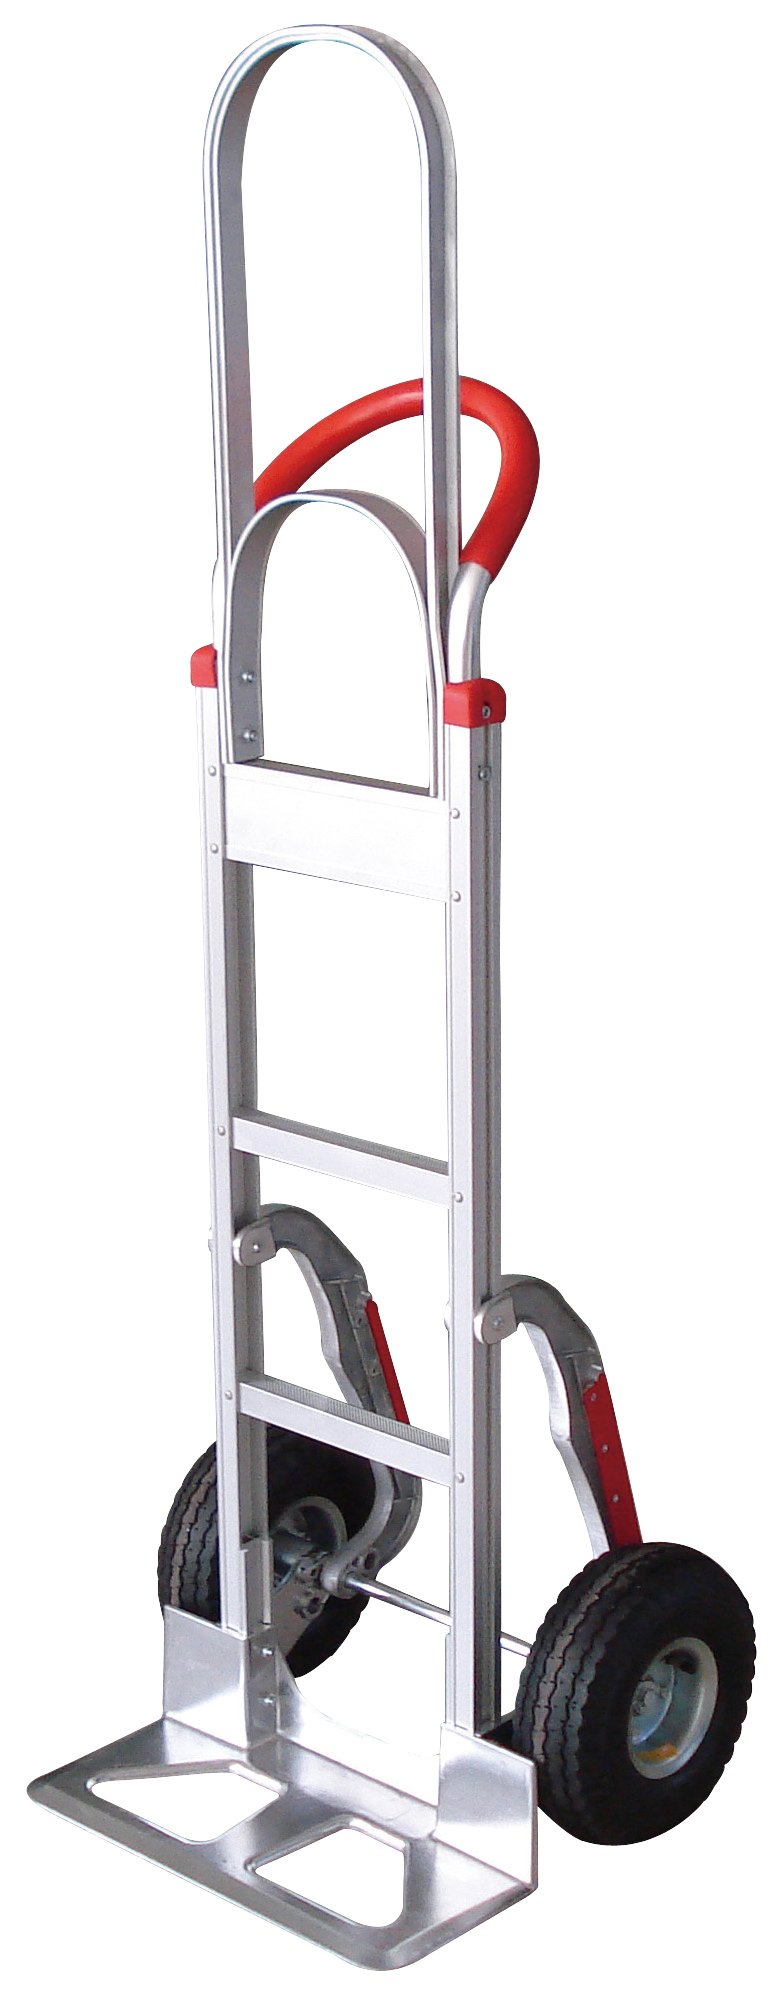 Tyke Supply Aluminum Stair Climber Hand Truck with Extra Tall Handle by Tyke Supply